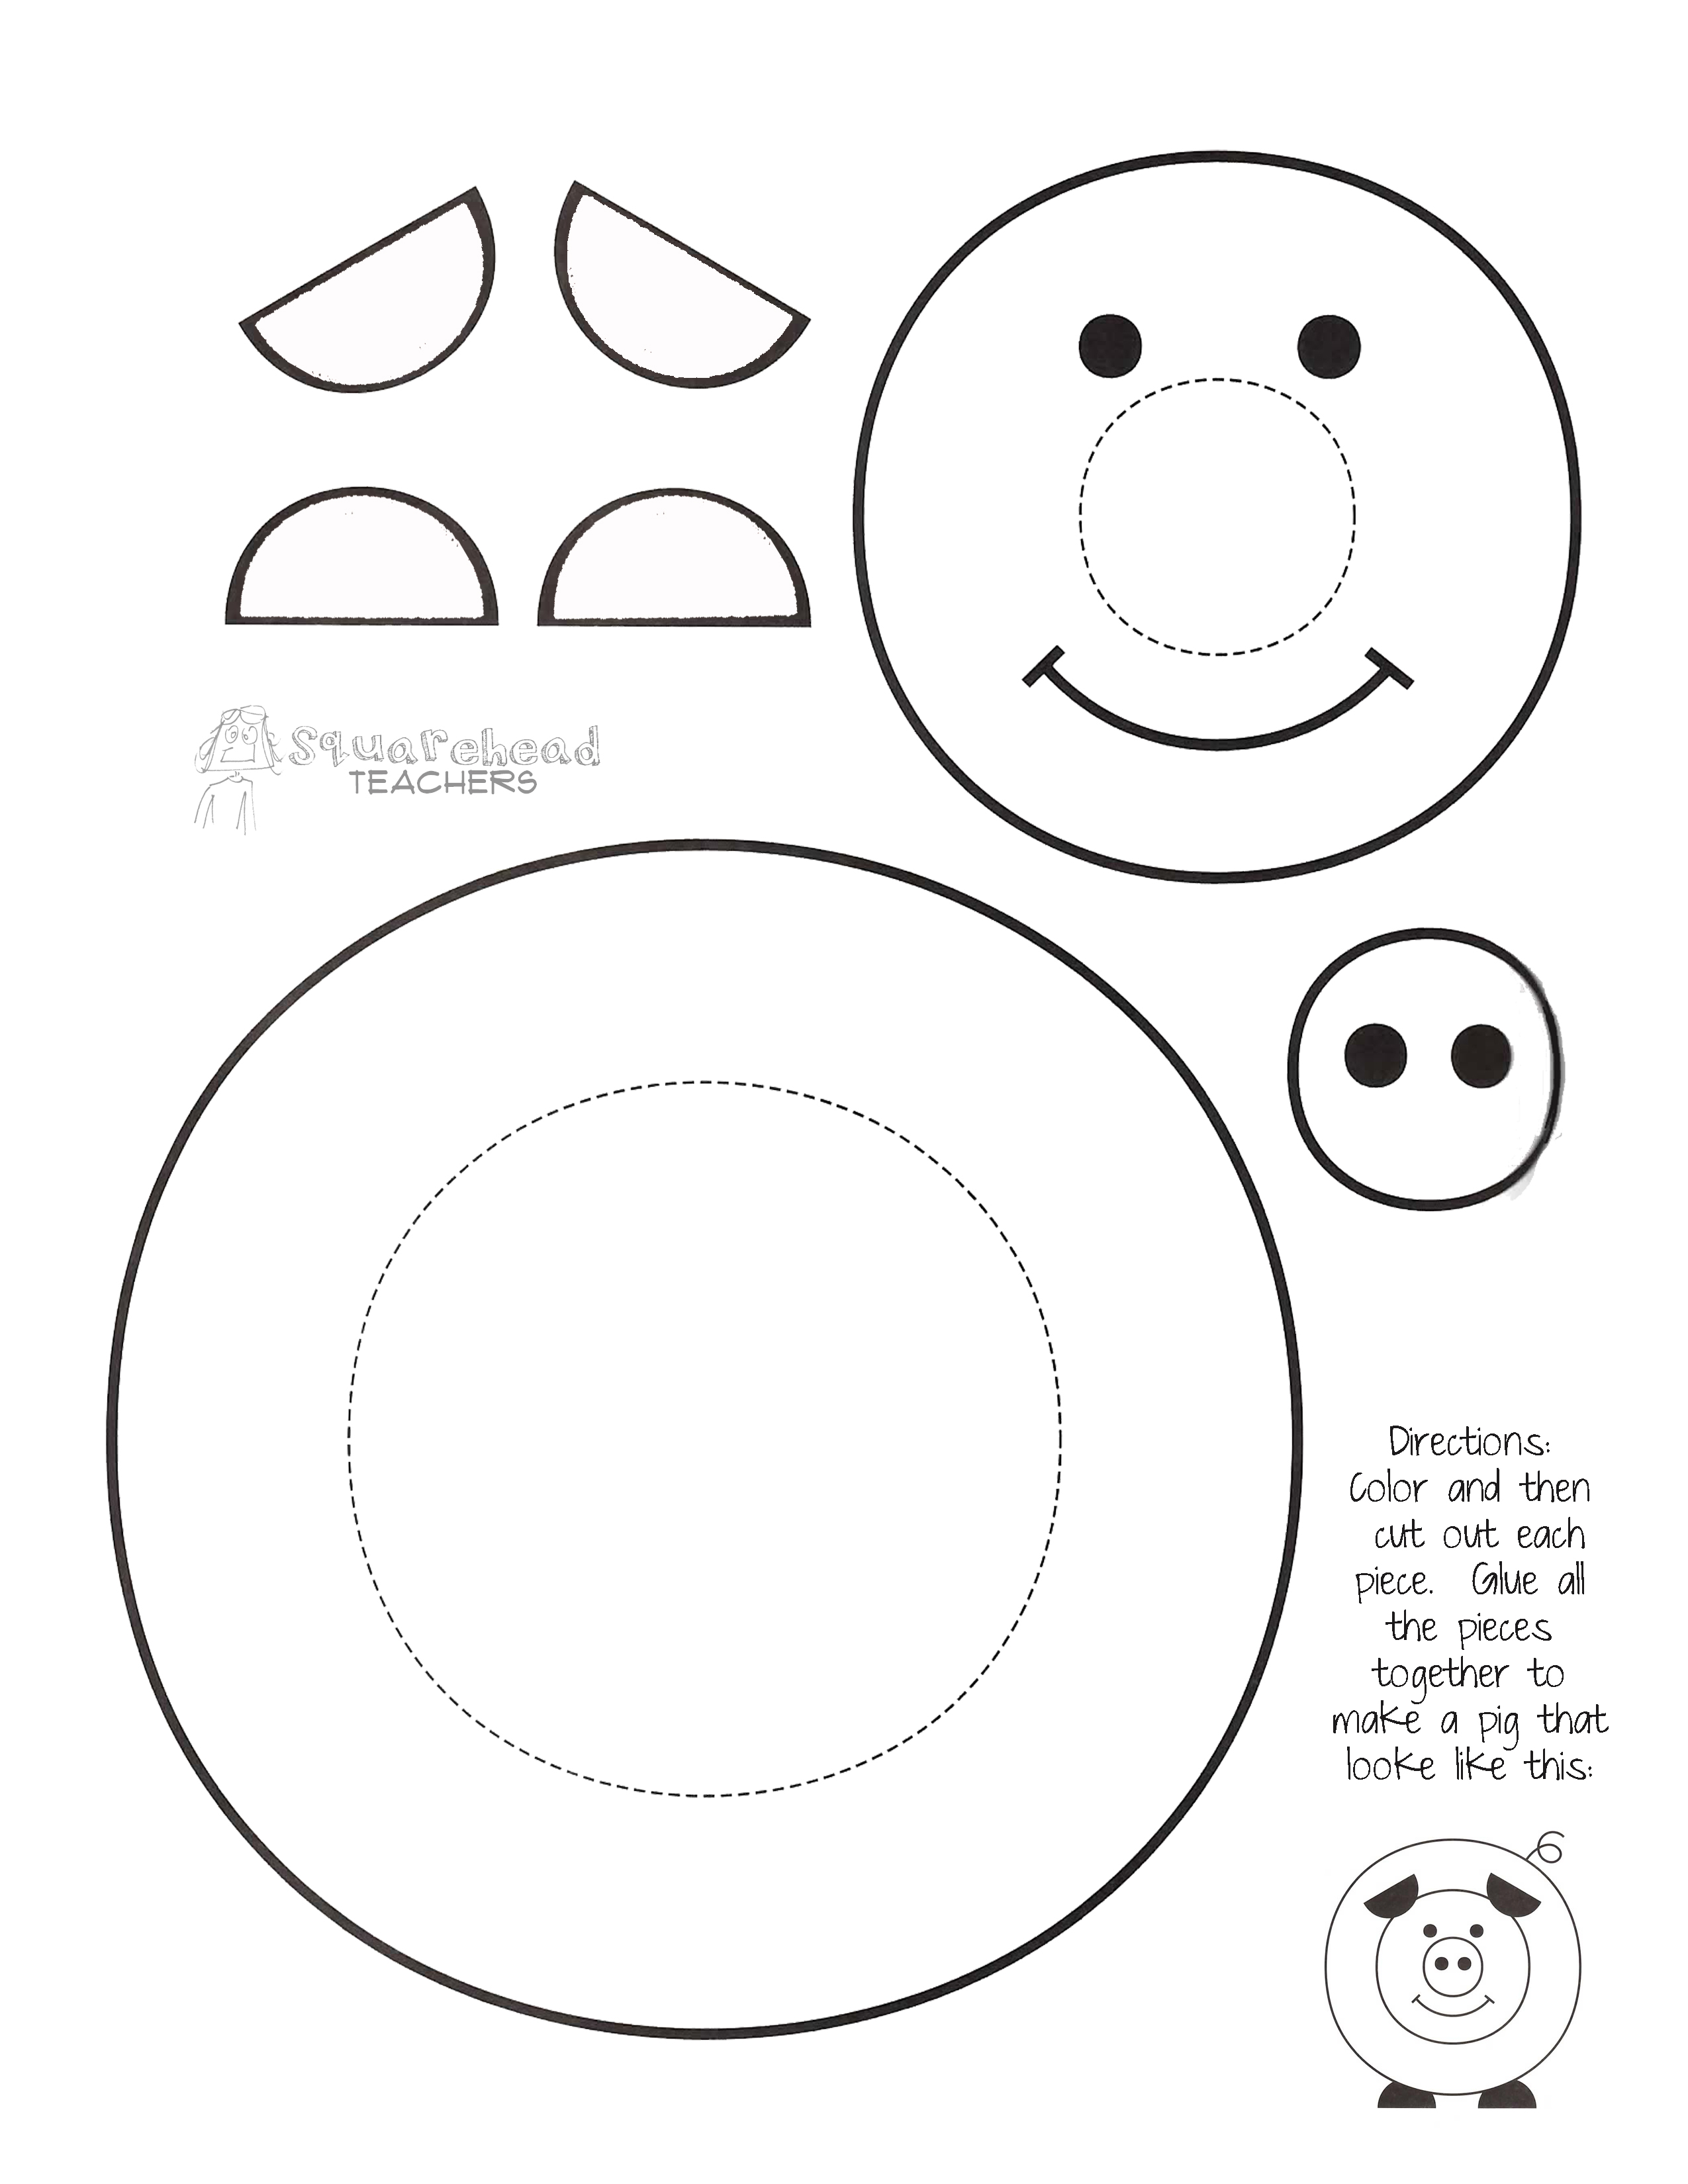 paint-a-pig-printable Template Of Accommodations Letter From Teacher on resume cover, end year, gift donation, free new, parent introduction, parent welcome, thank you, welcome back, appreciation thank you,